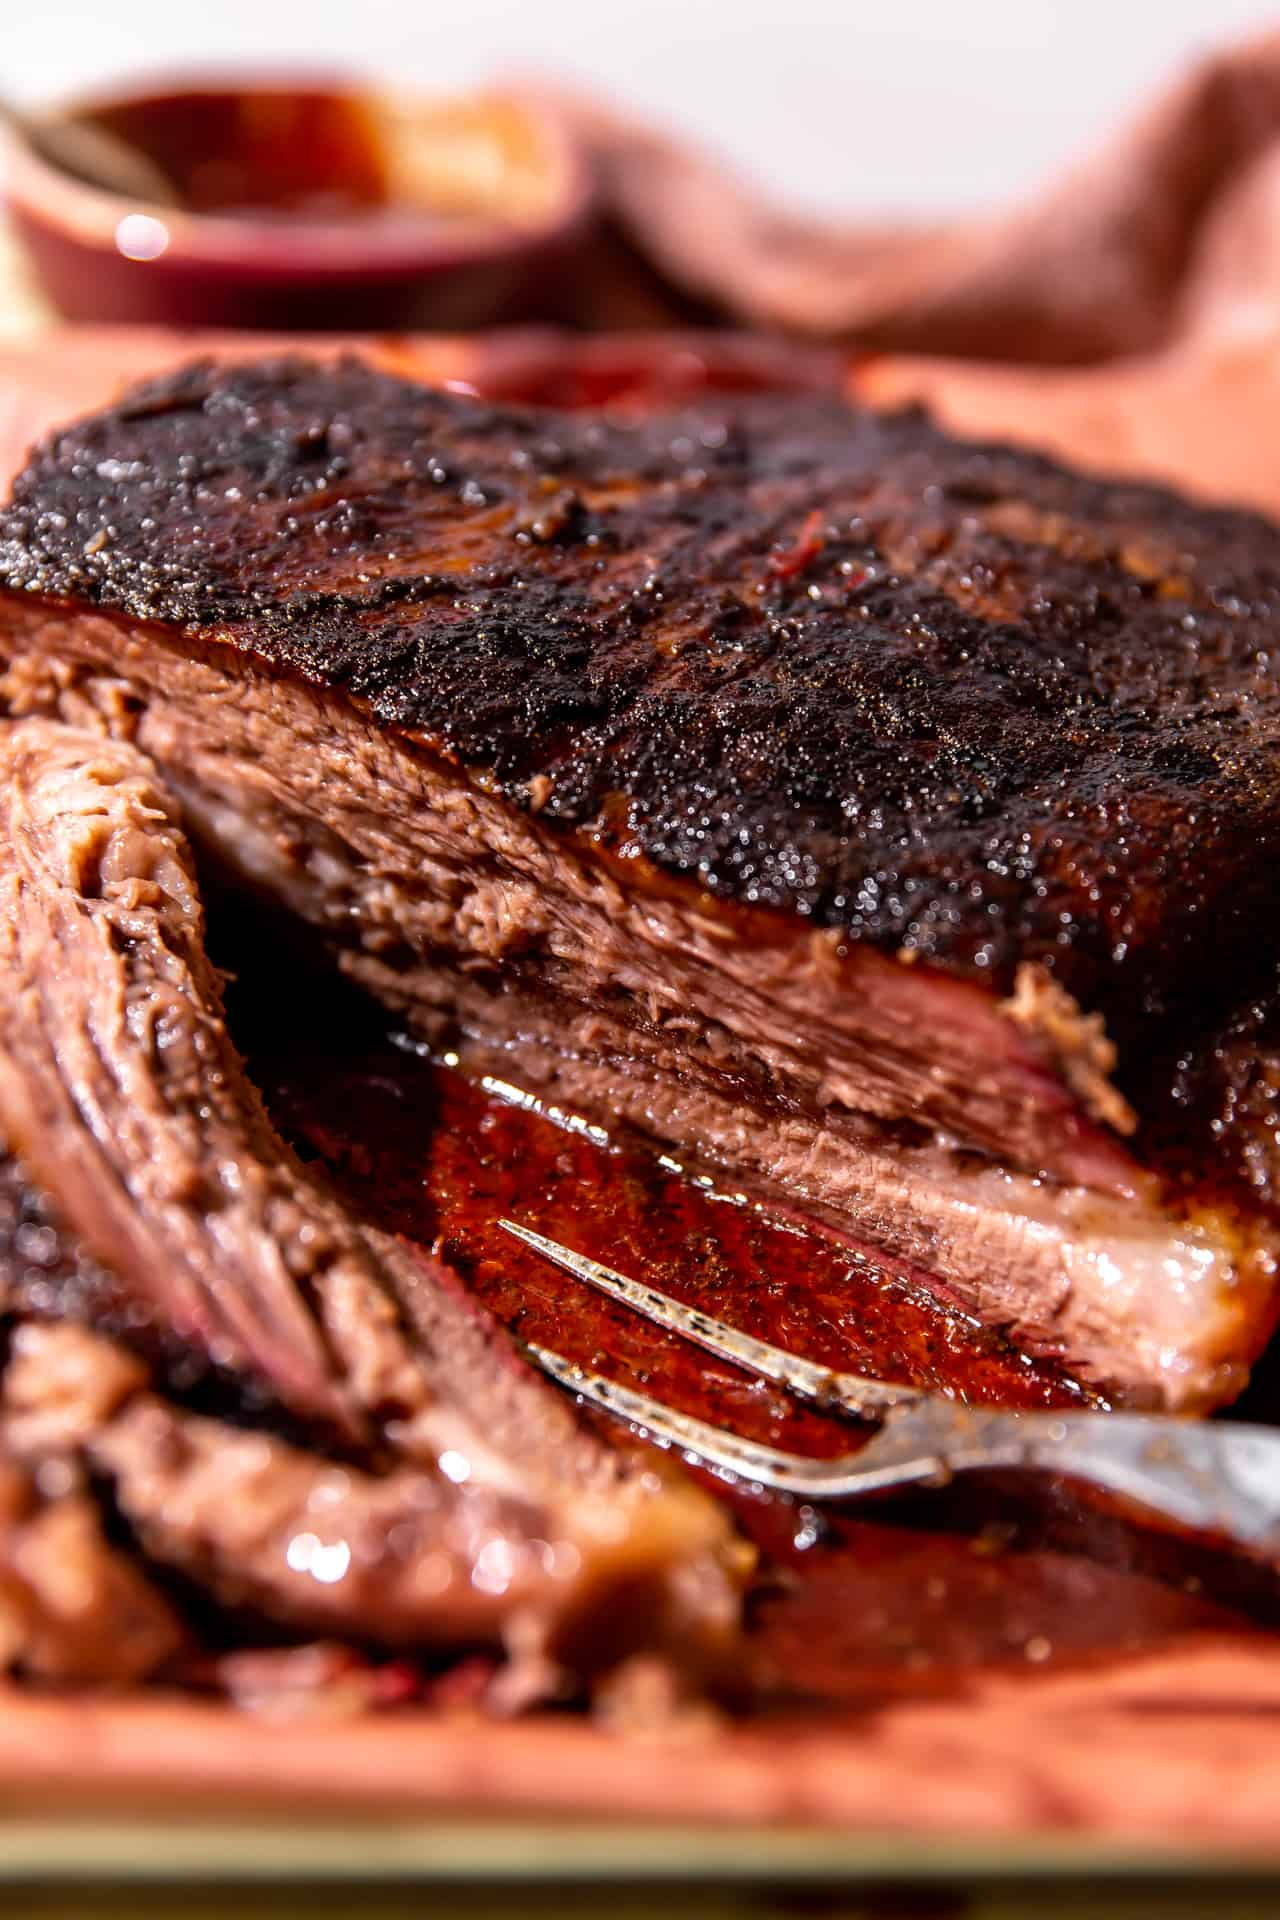 Sliced beef brisket after smoking with juices coming out.